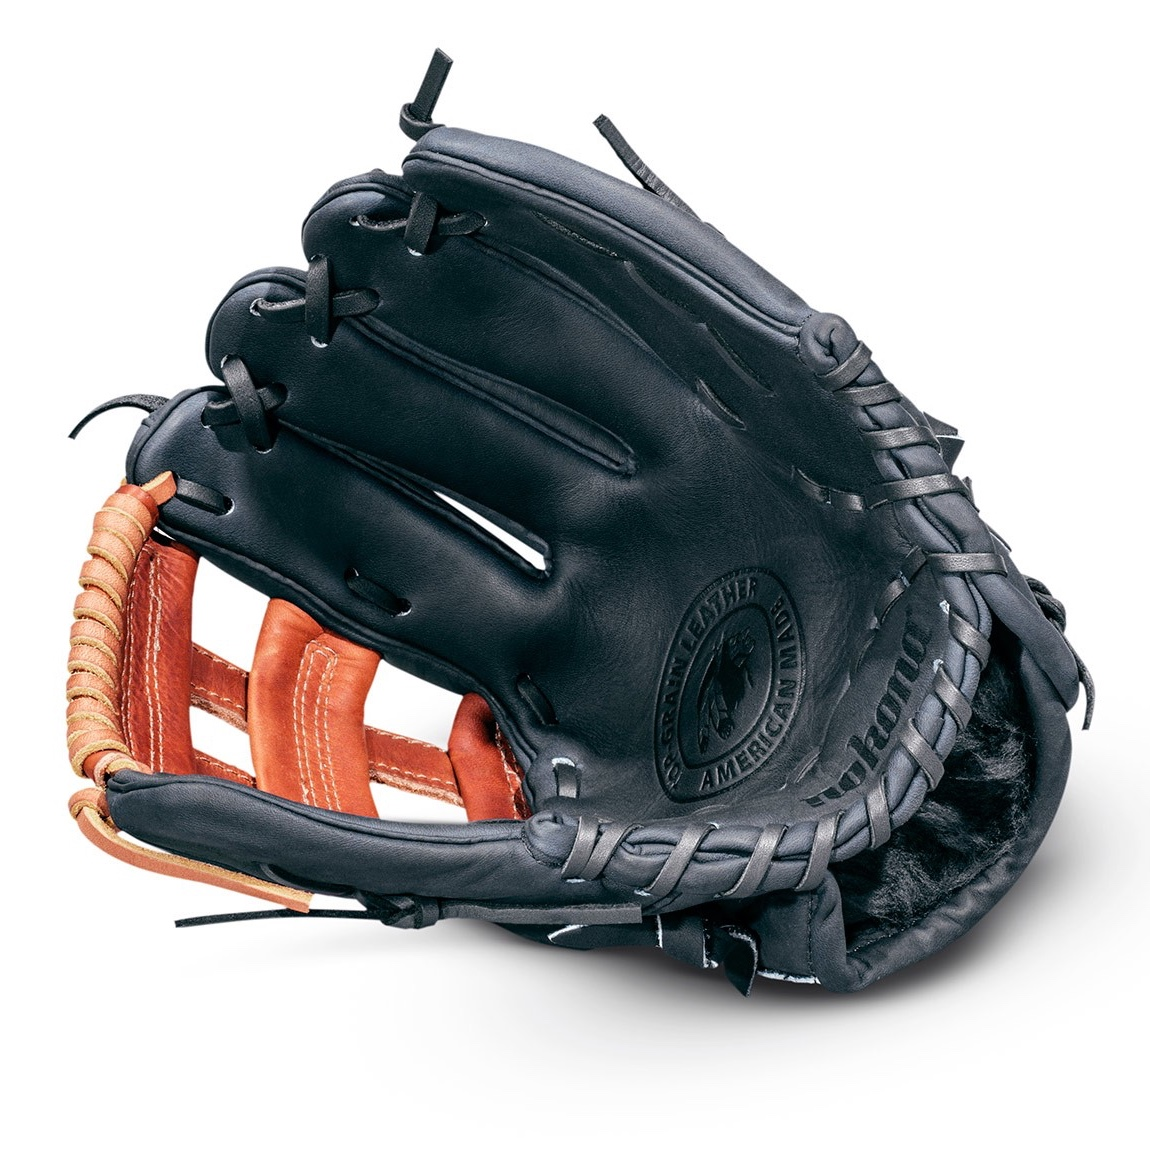 Shinola + Nokona Baseball Glove. Nokona has been manufacturing ball gloves in the USA since 1934. Image © Shinola 2016.